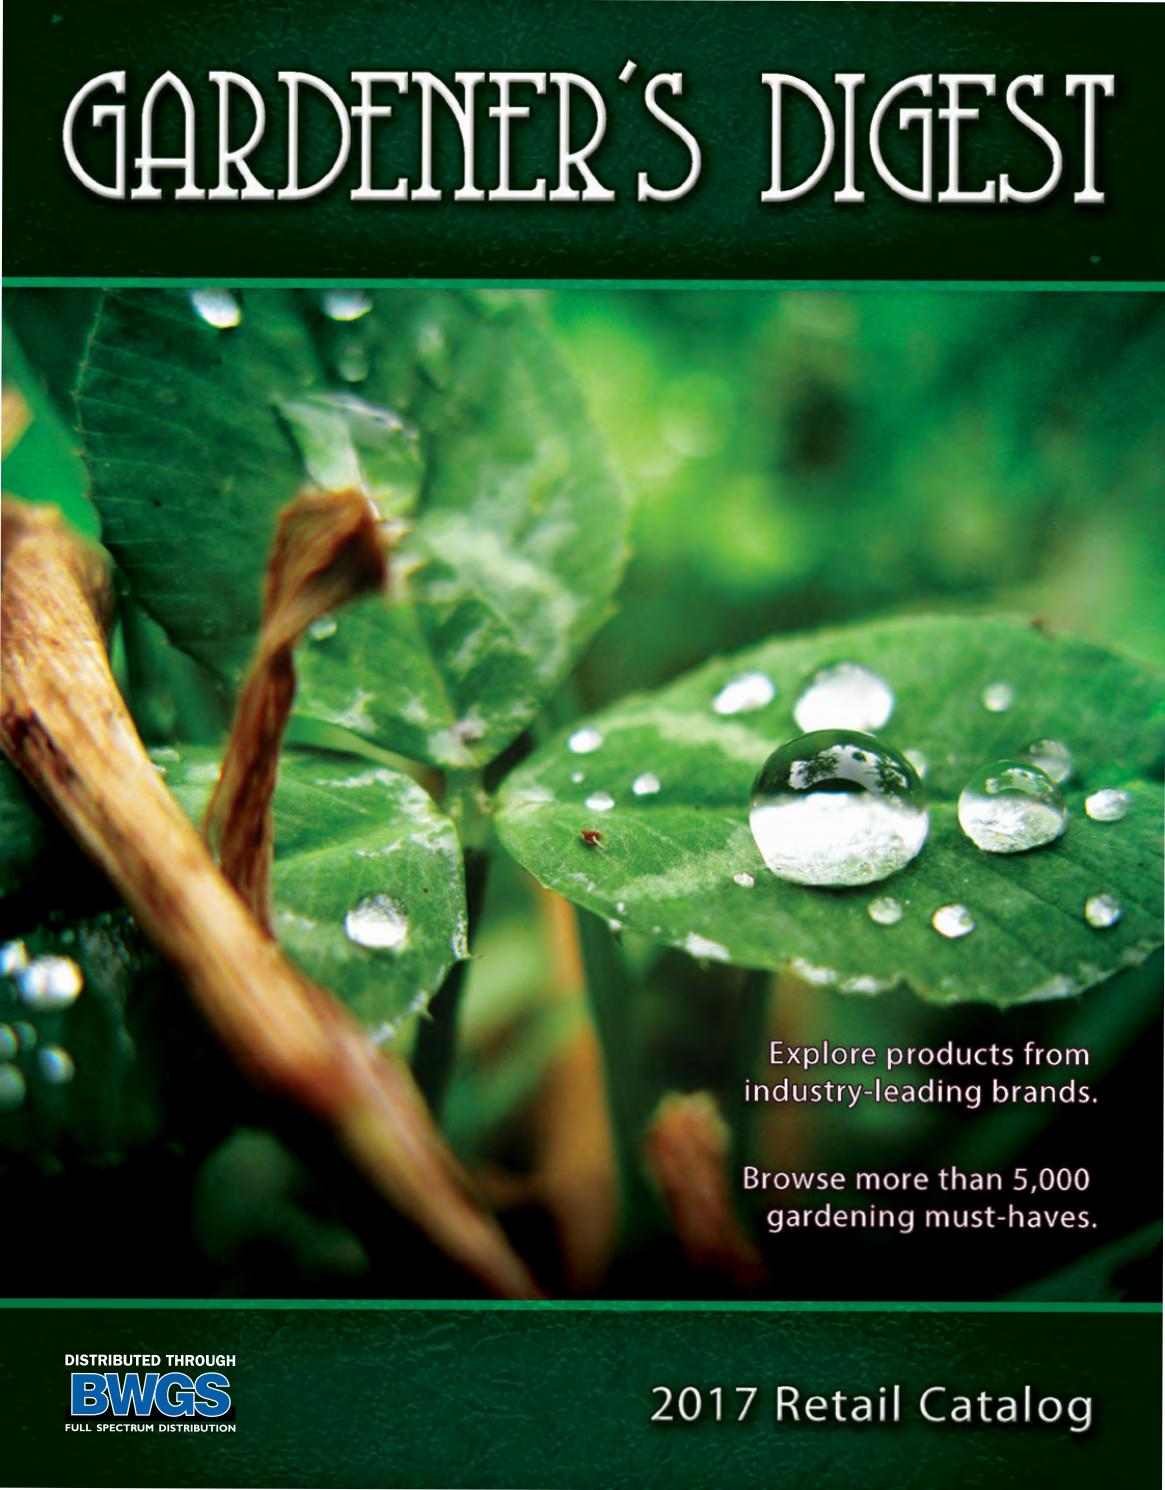 Gardeners Digest 2017 Catalog By Bwgs Issuu Products Humidifiers Water Bypass Powerfan